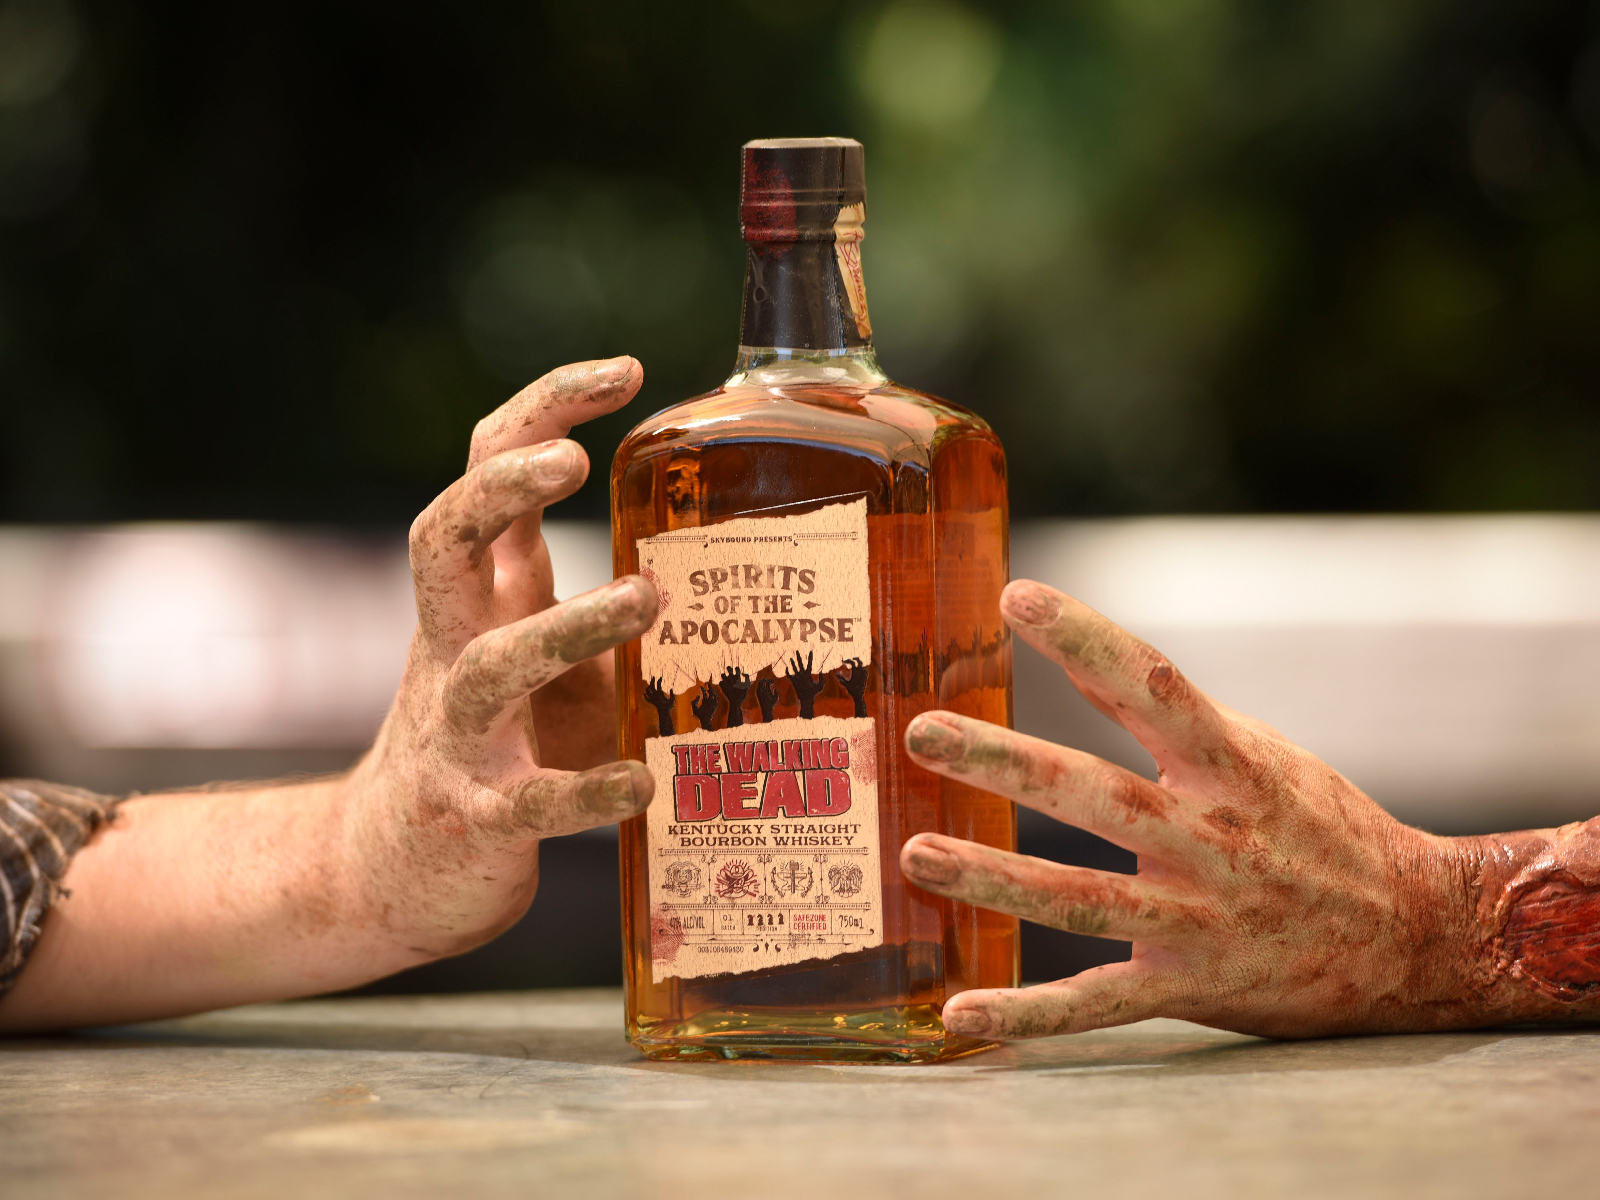 'The Walking Dead' Bourbon Arrives This Fall